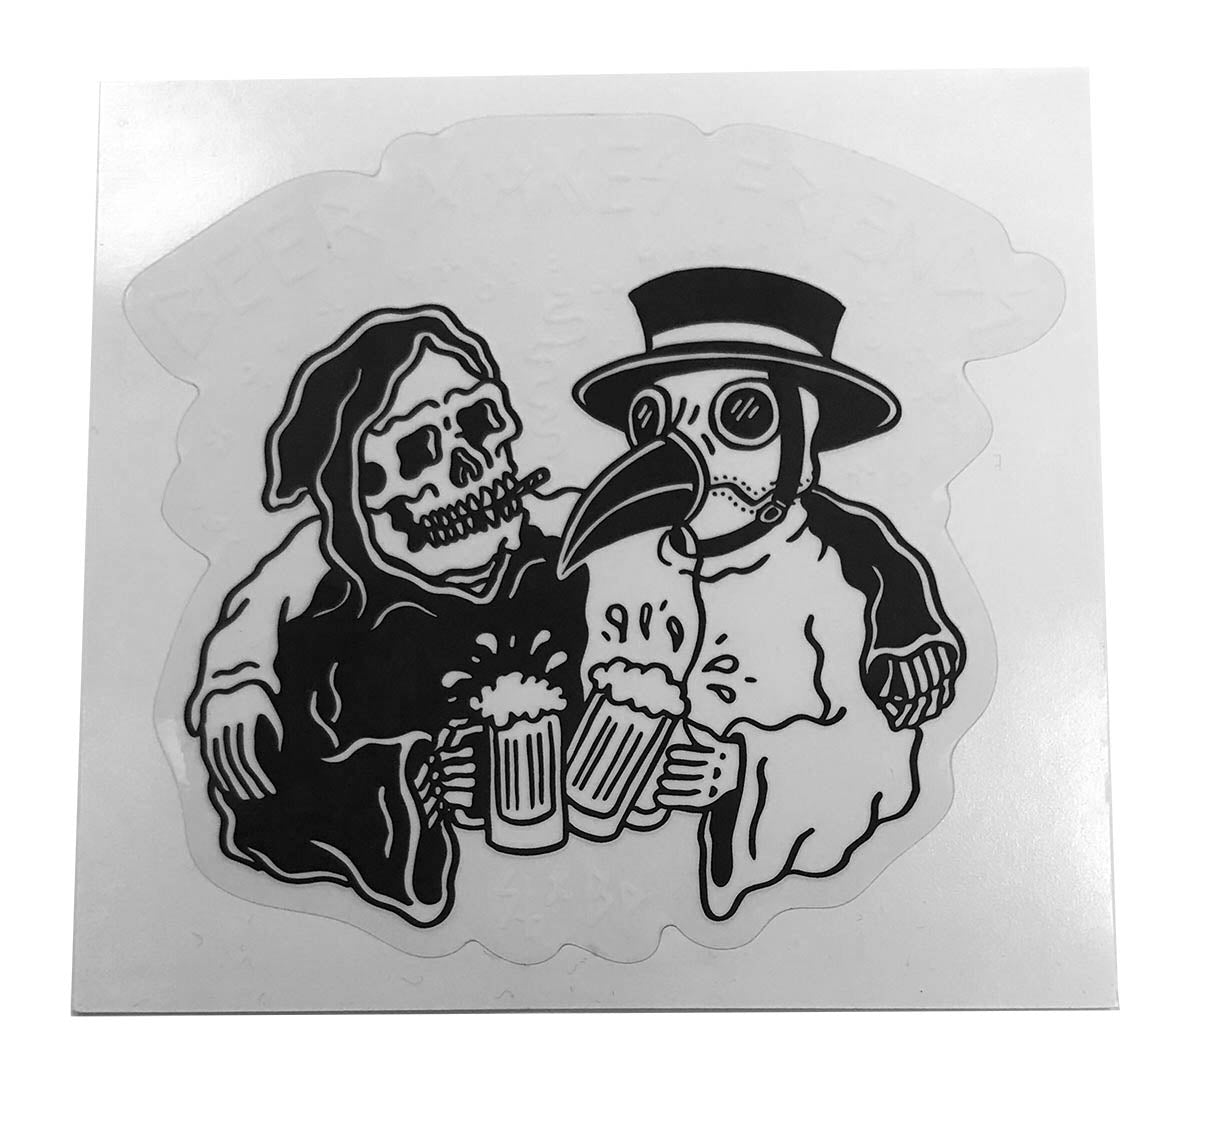 Sticker - Beer Makes Friends